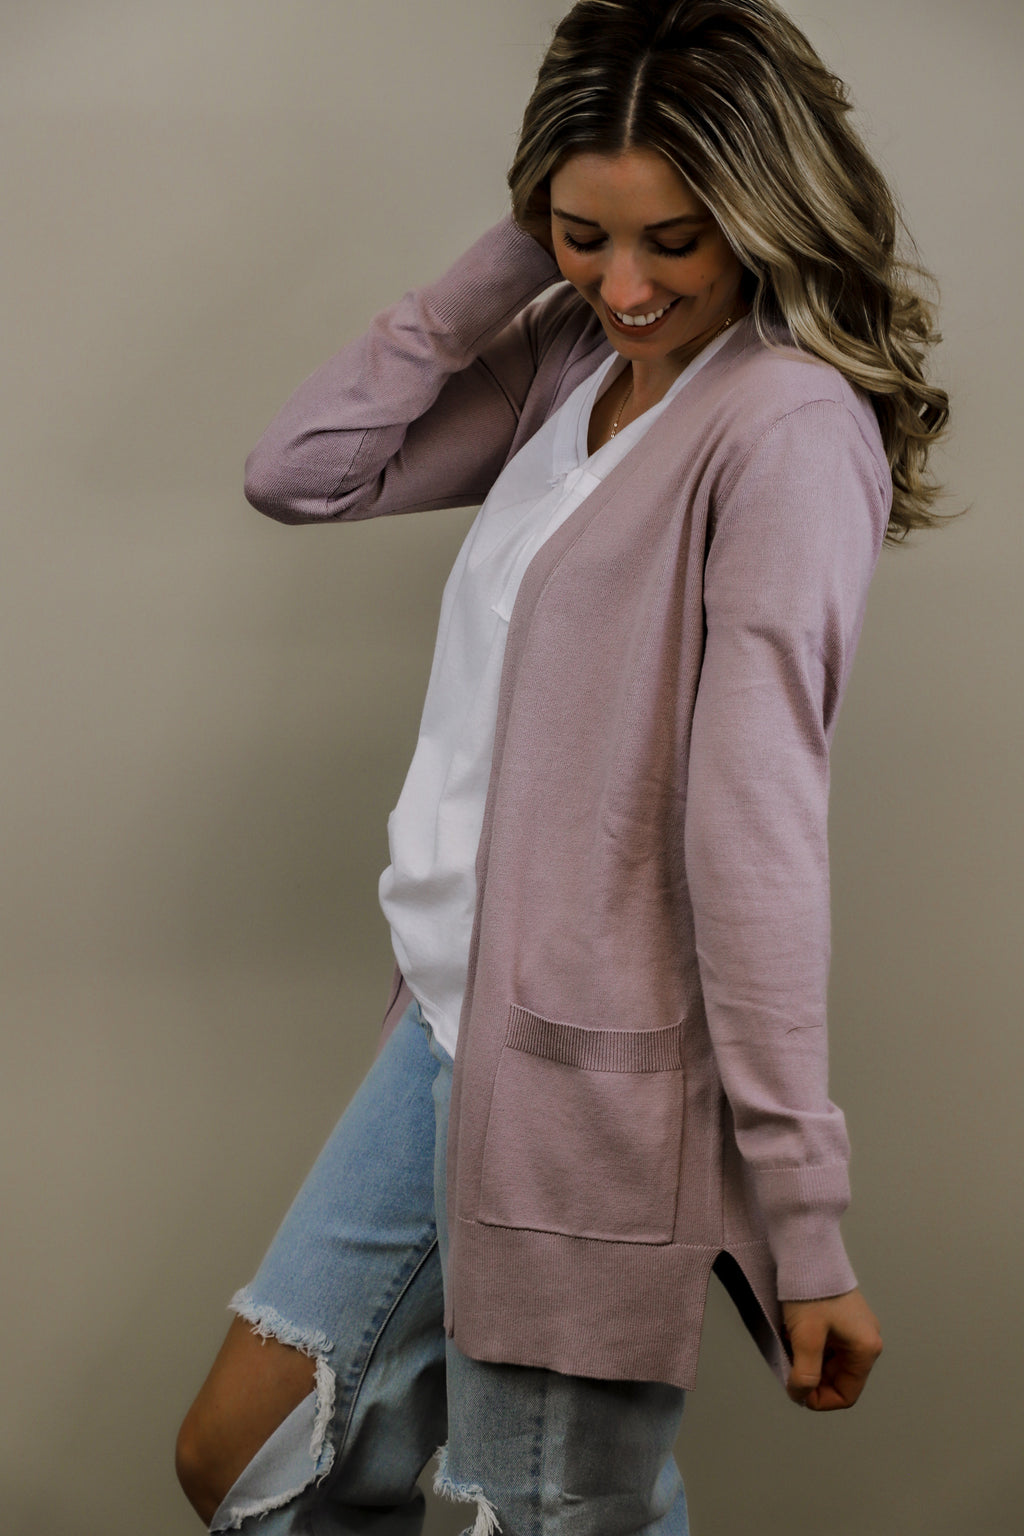 Faithful Striped Dress - The Rooted Shoppe